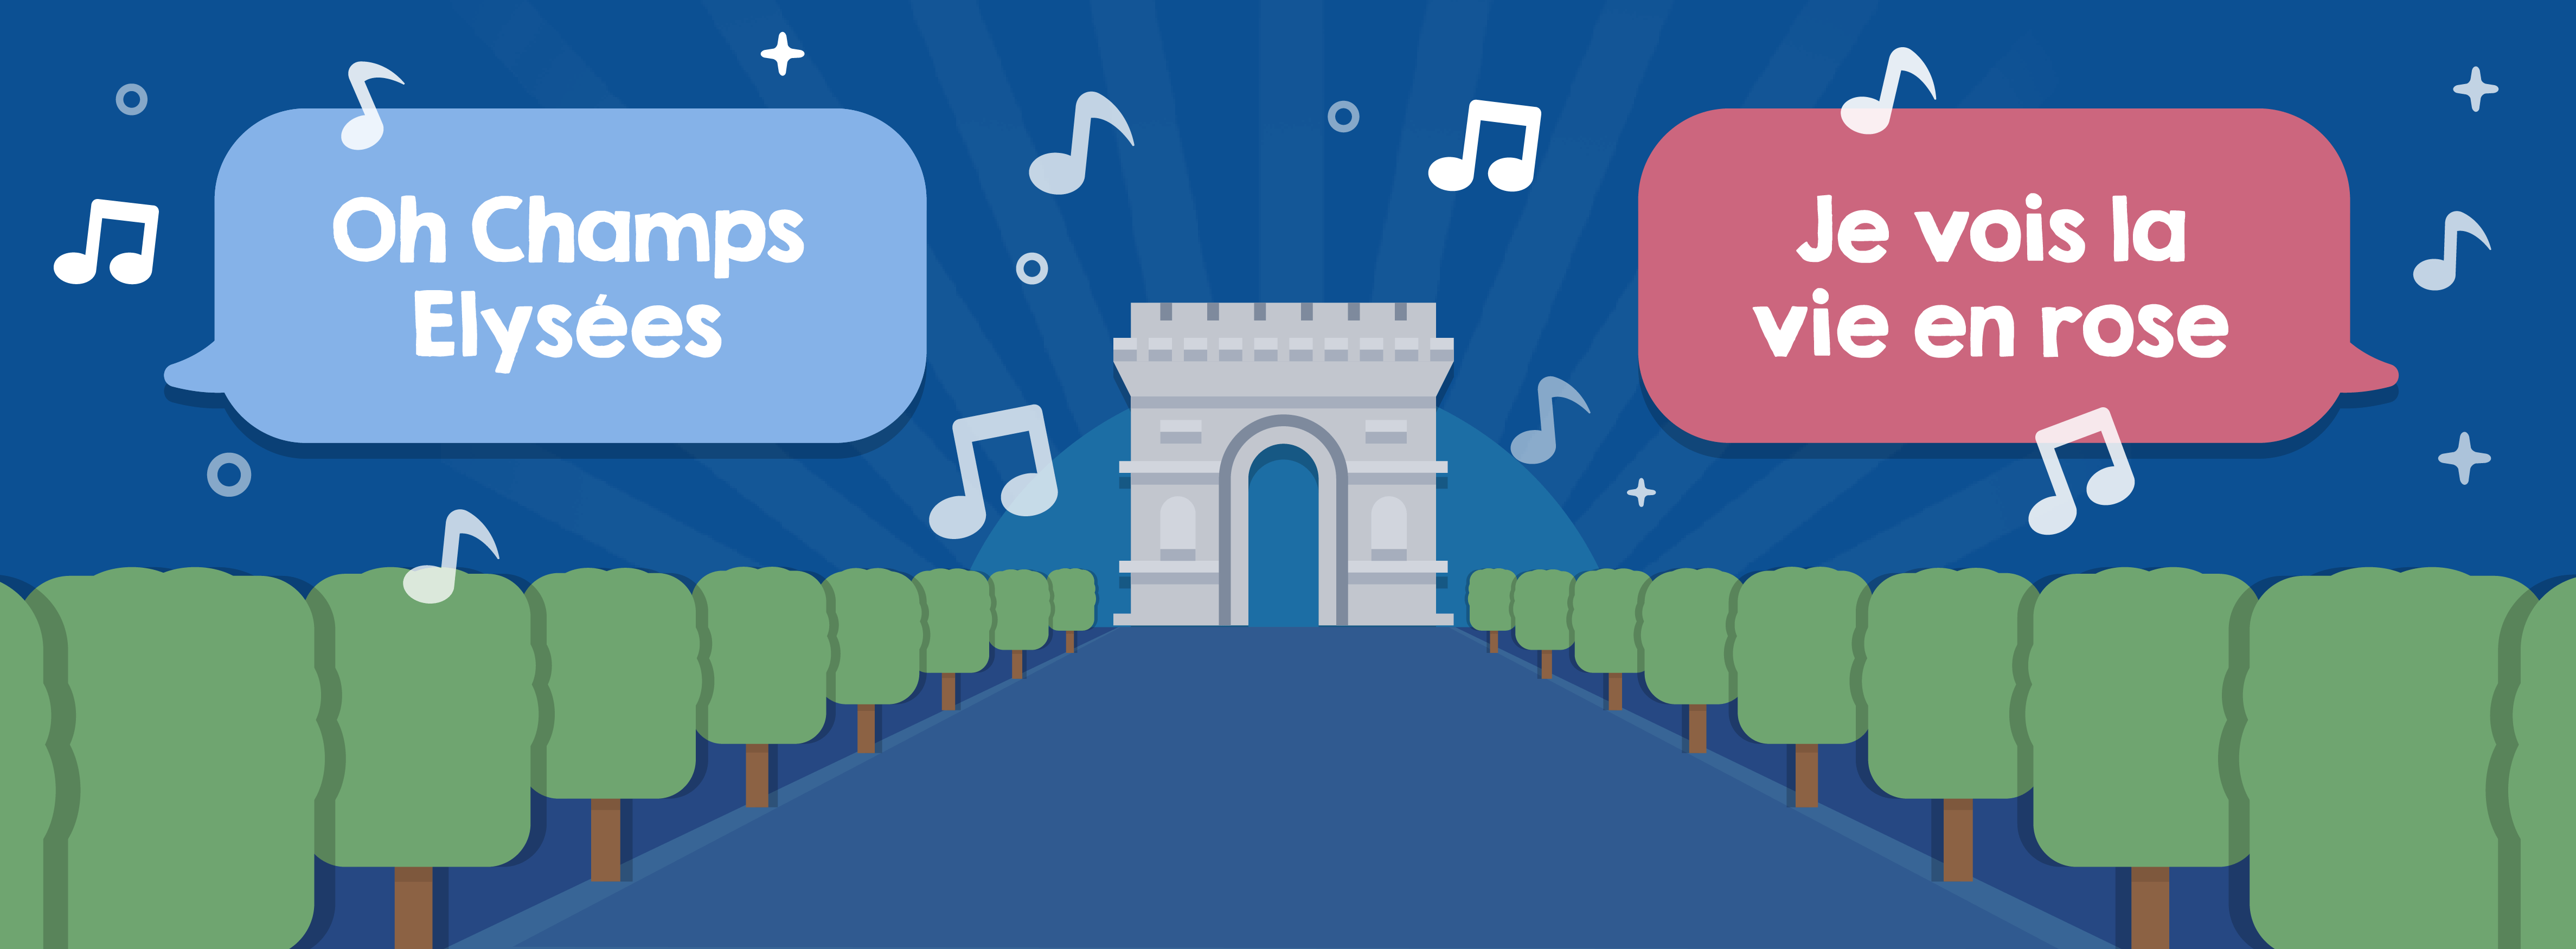 Popular French Songs Through the Years - FlashAcademy